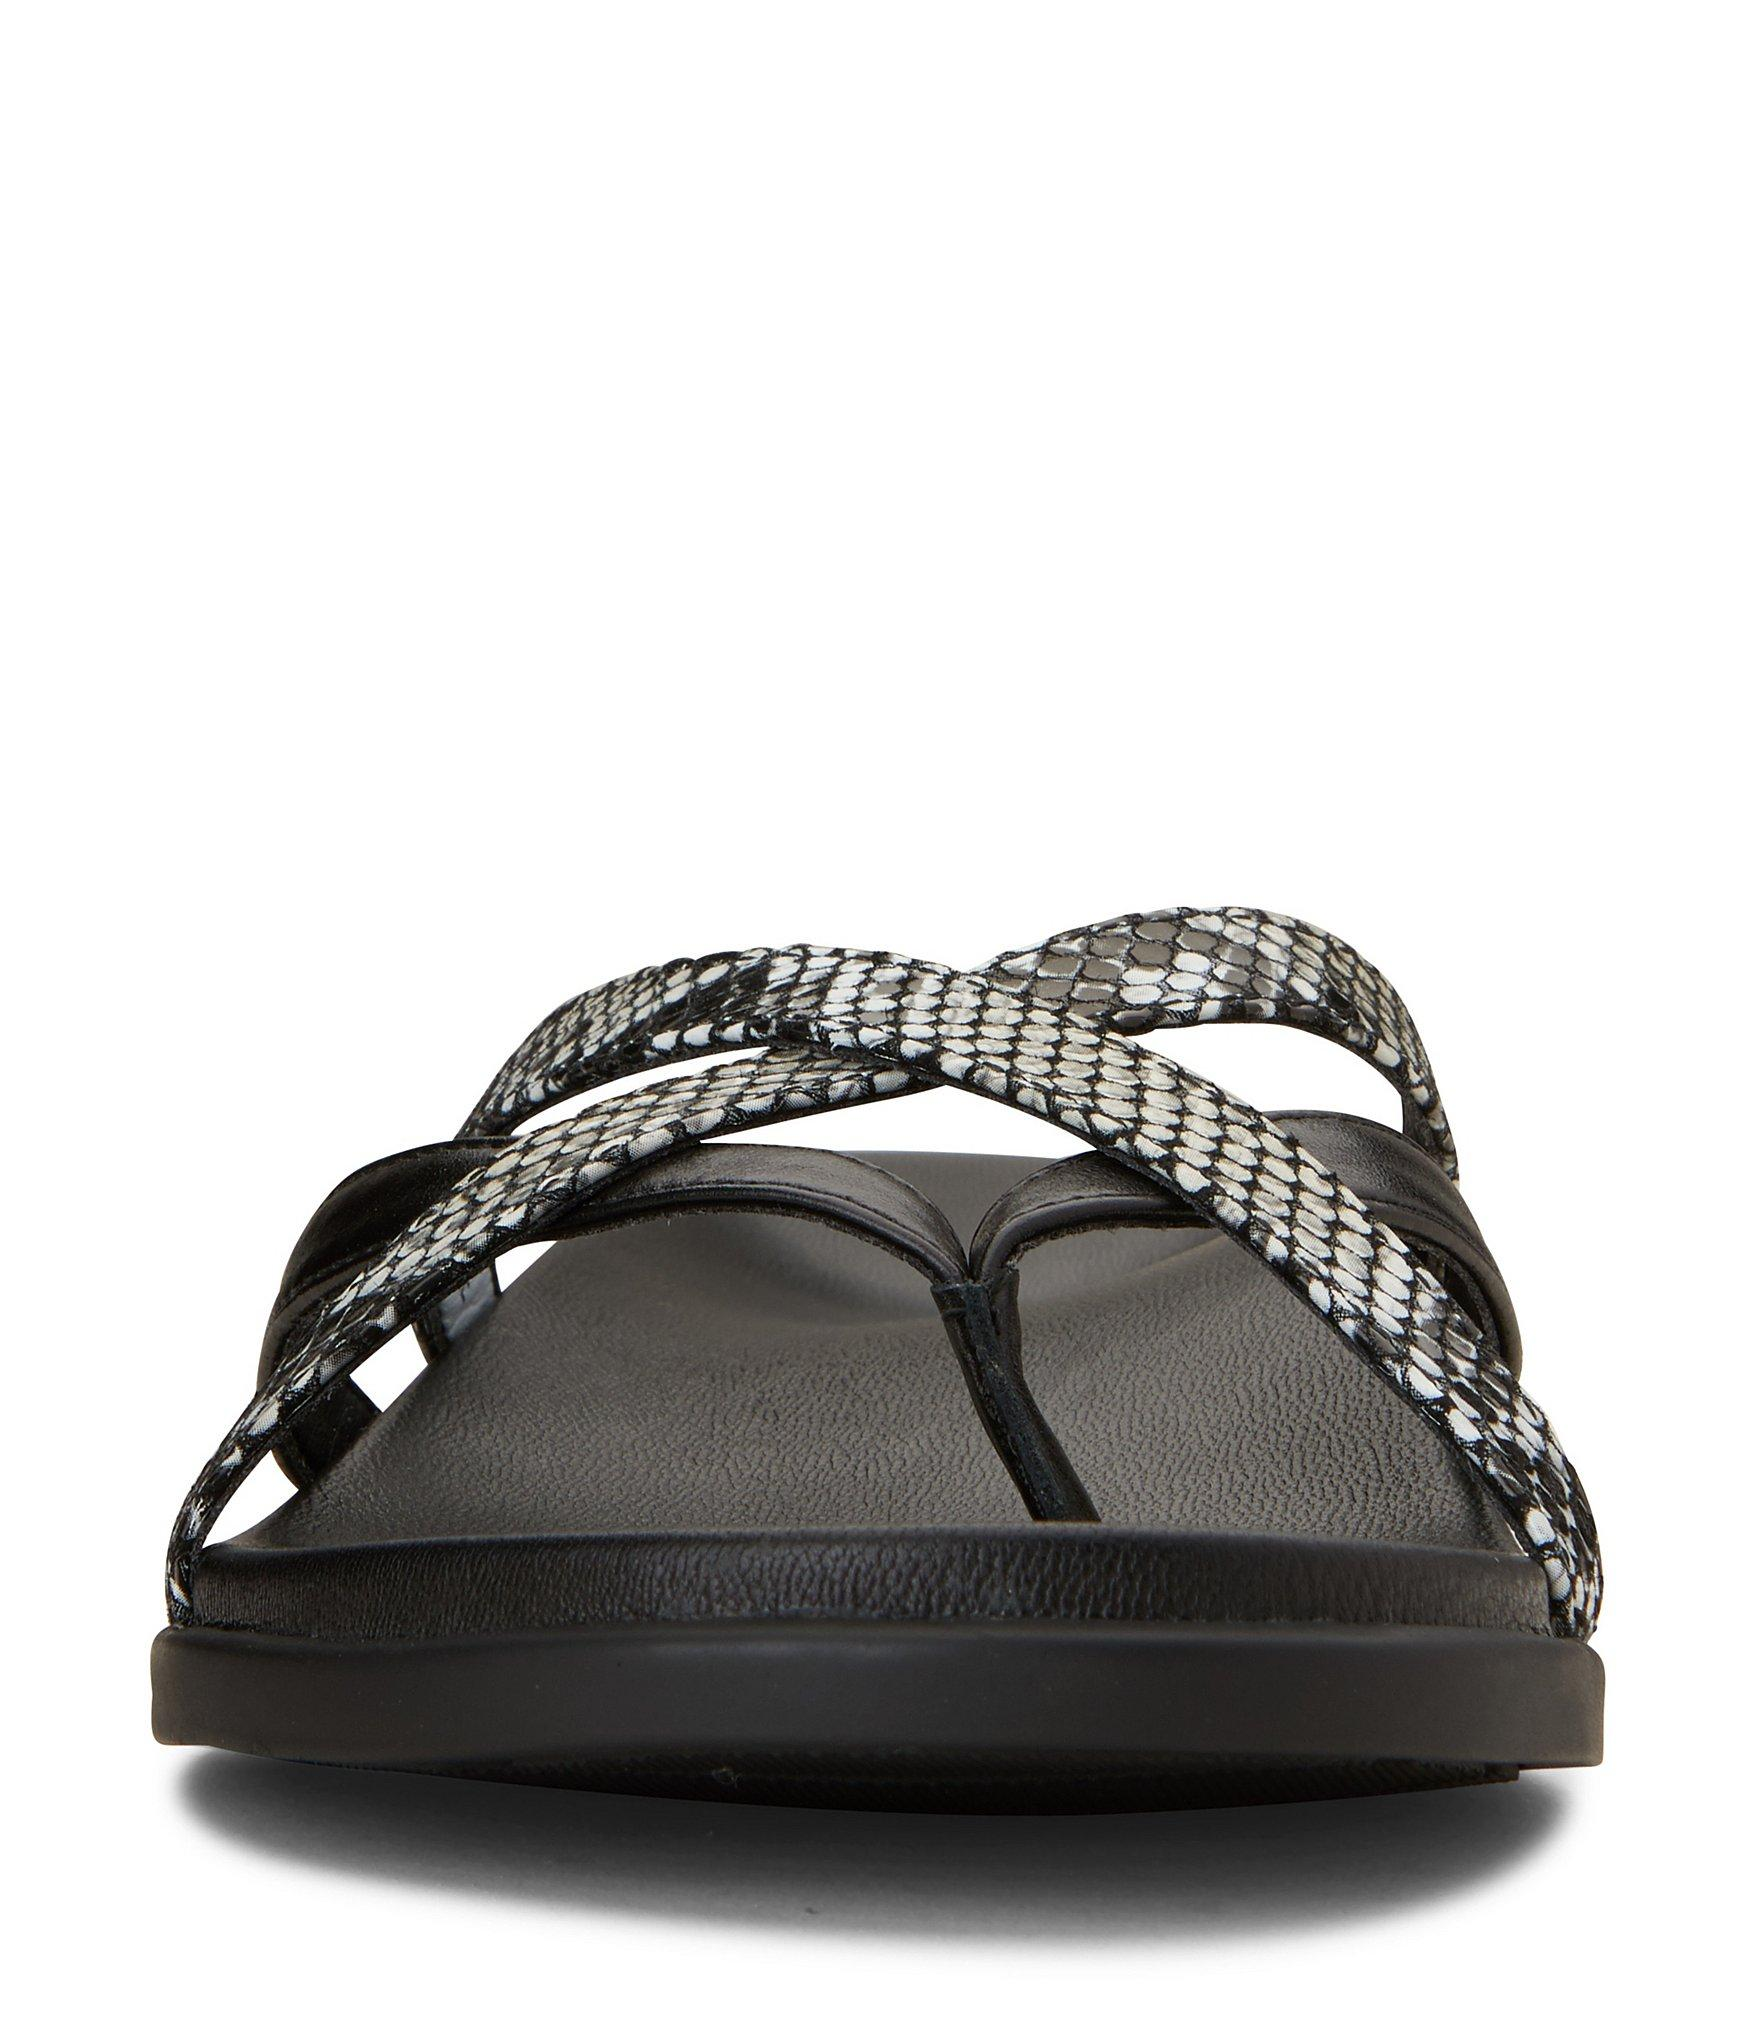 a4b8a511cf38 Lyst - Vionic Daisy Natural Snake Print Leather Toe Post Sandals in ...